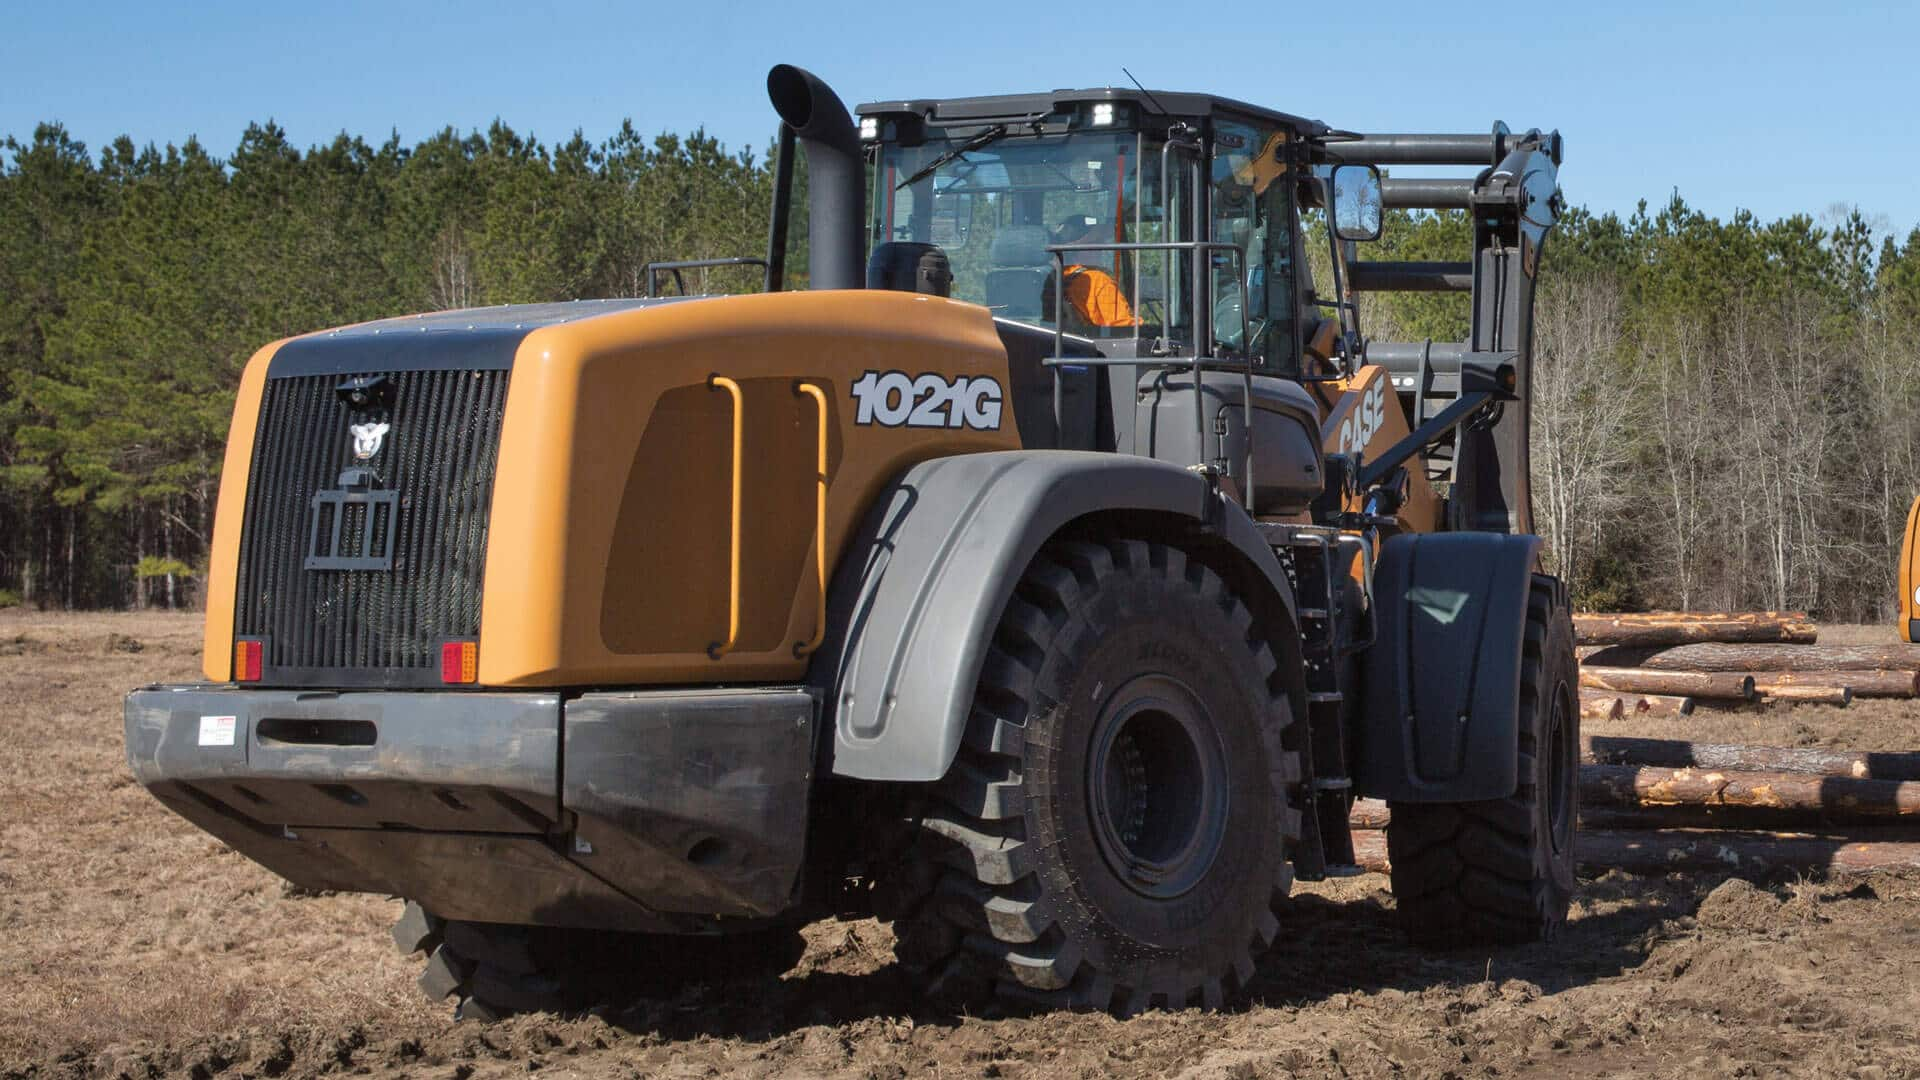 CASE 1021G Wheel Loader | CASE Construction Equipment